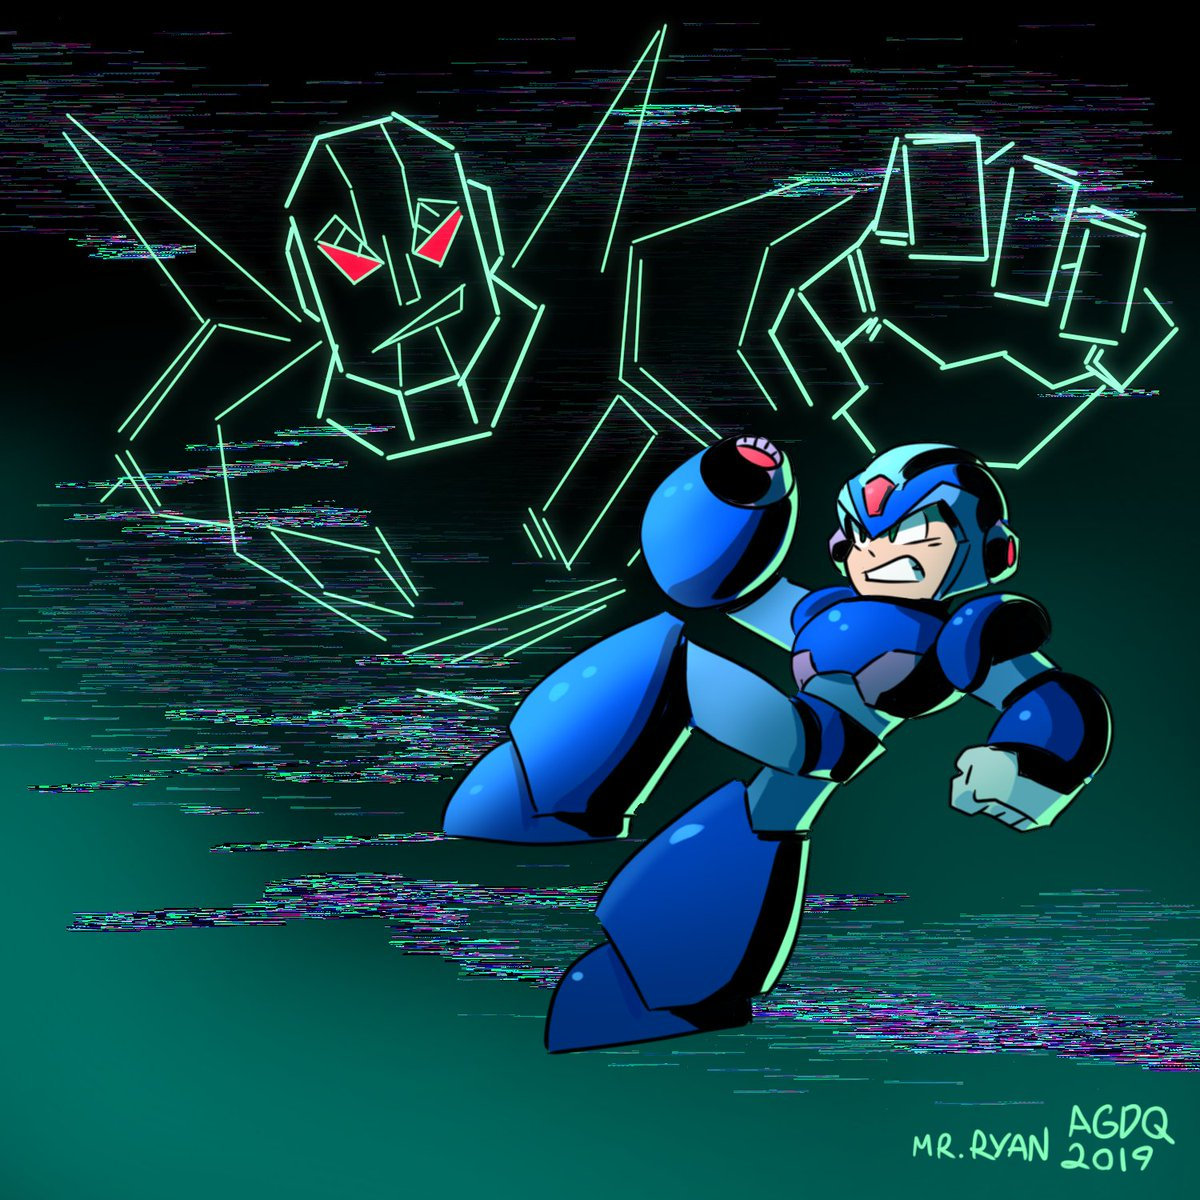 Fight Mega Man X! Fight For Everlasting Peace! #GamesDrawnQuick #MegaManX @GamesDoneQuick <br>http://pic.twitter.com/Uf8sYWnuc5